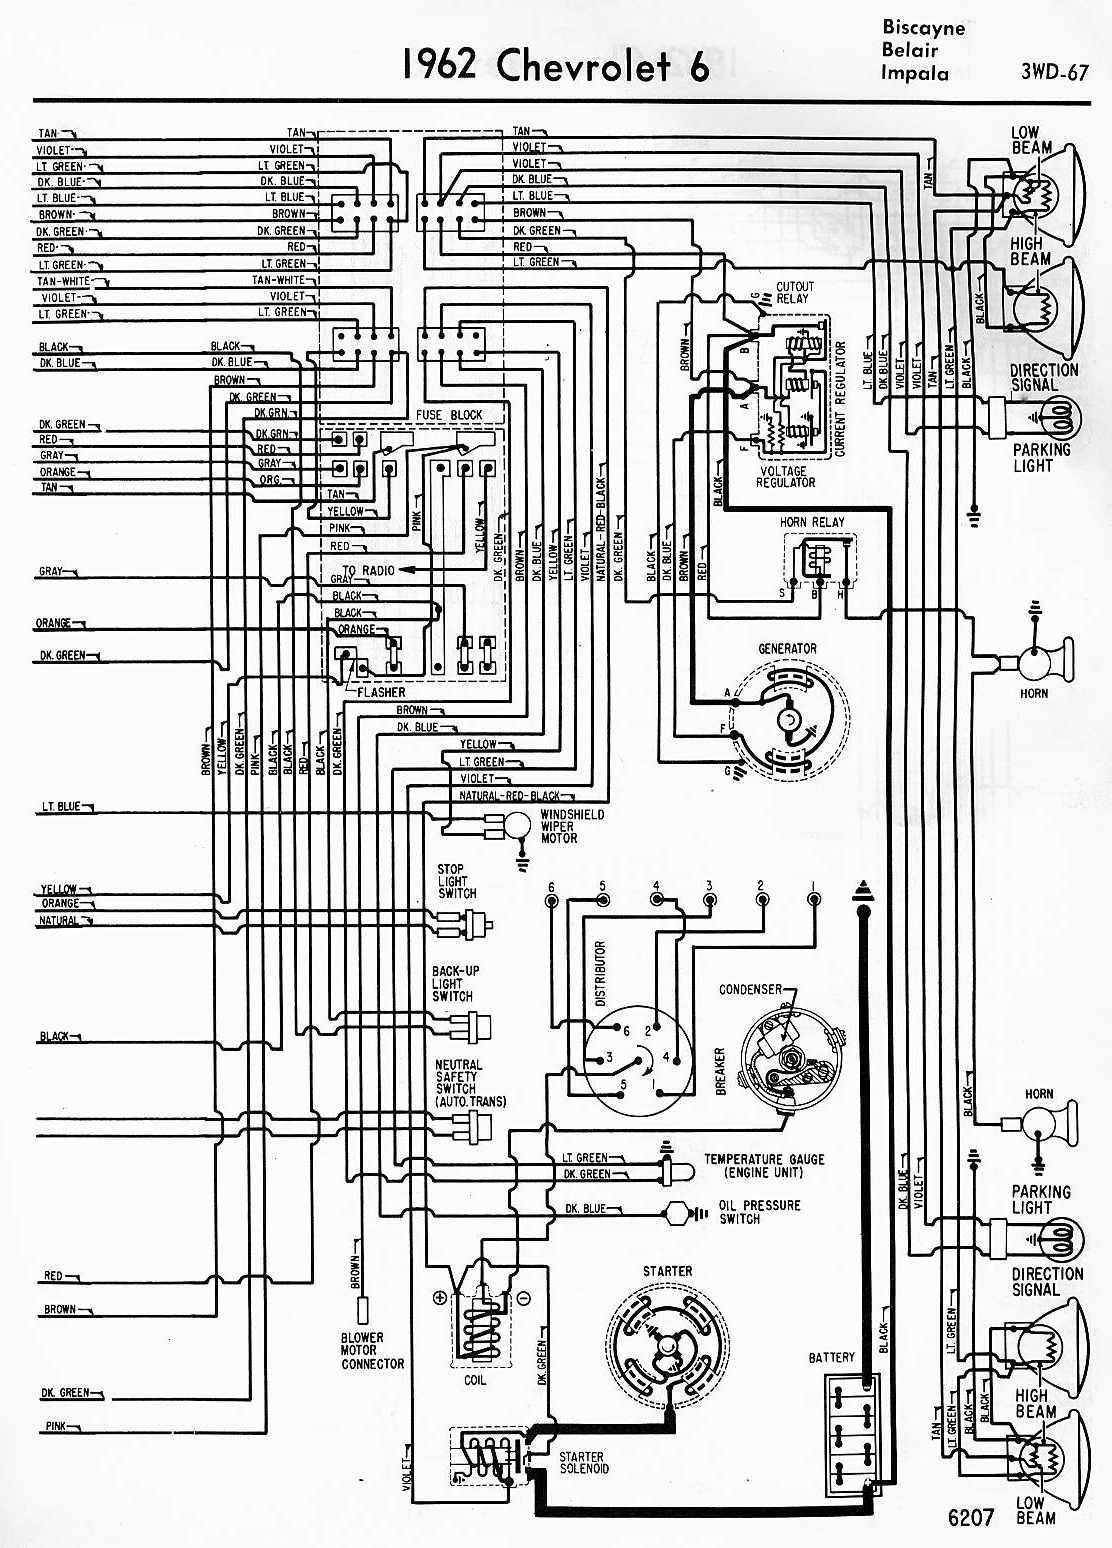 1966 Chevelle Fuse Box Wiring Library Impala Electrical Diagram Of 1962 Chevrolet 6 All About 66 Chevy 65